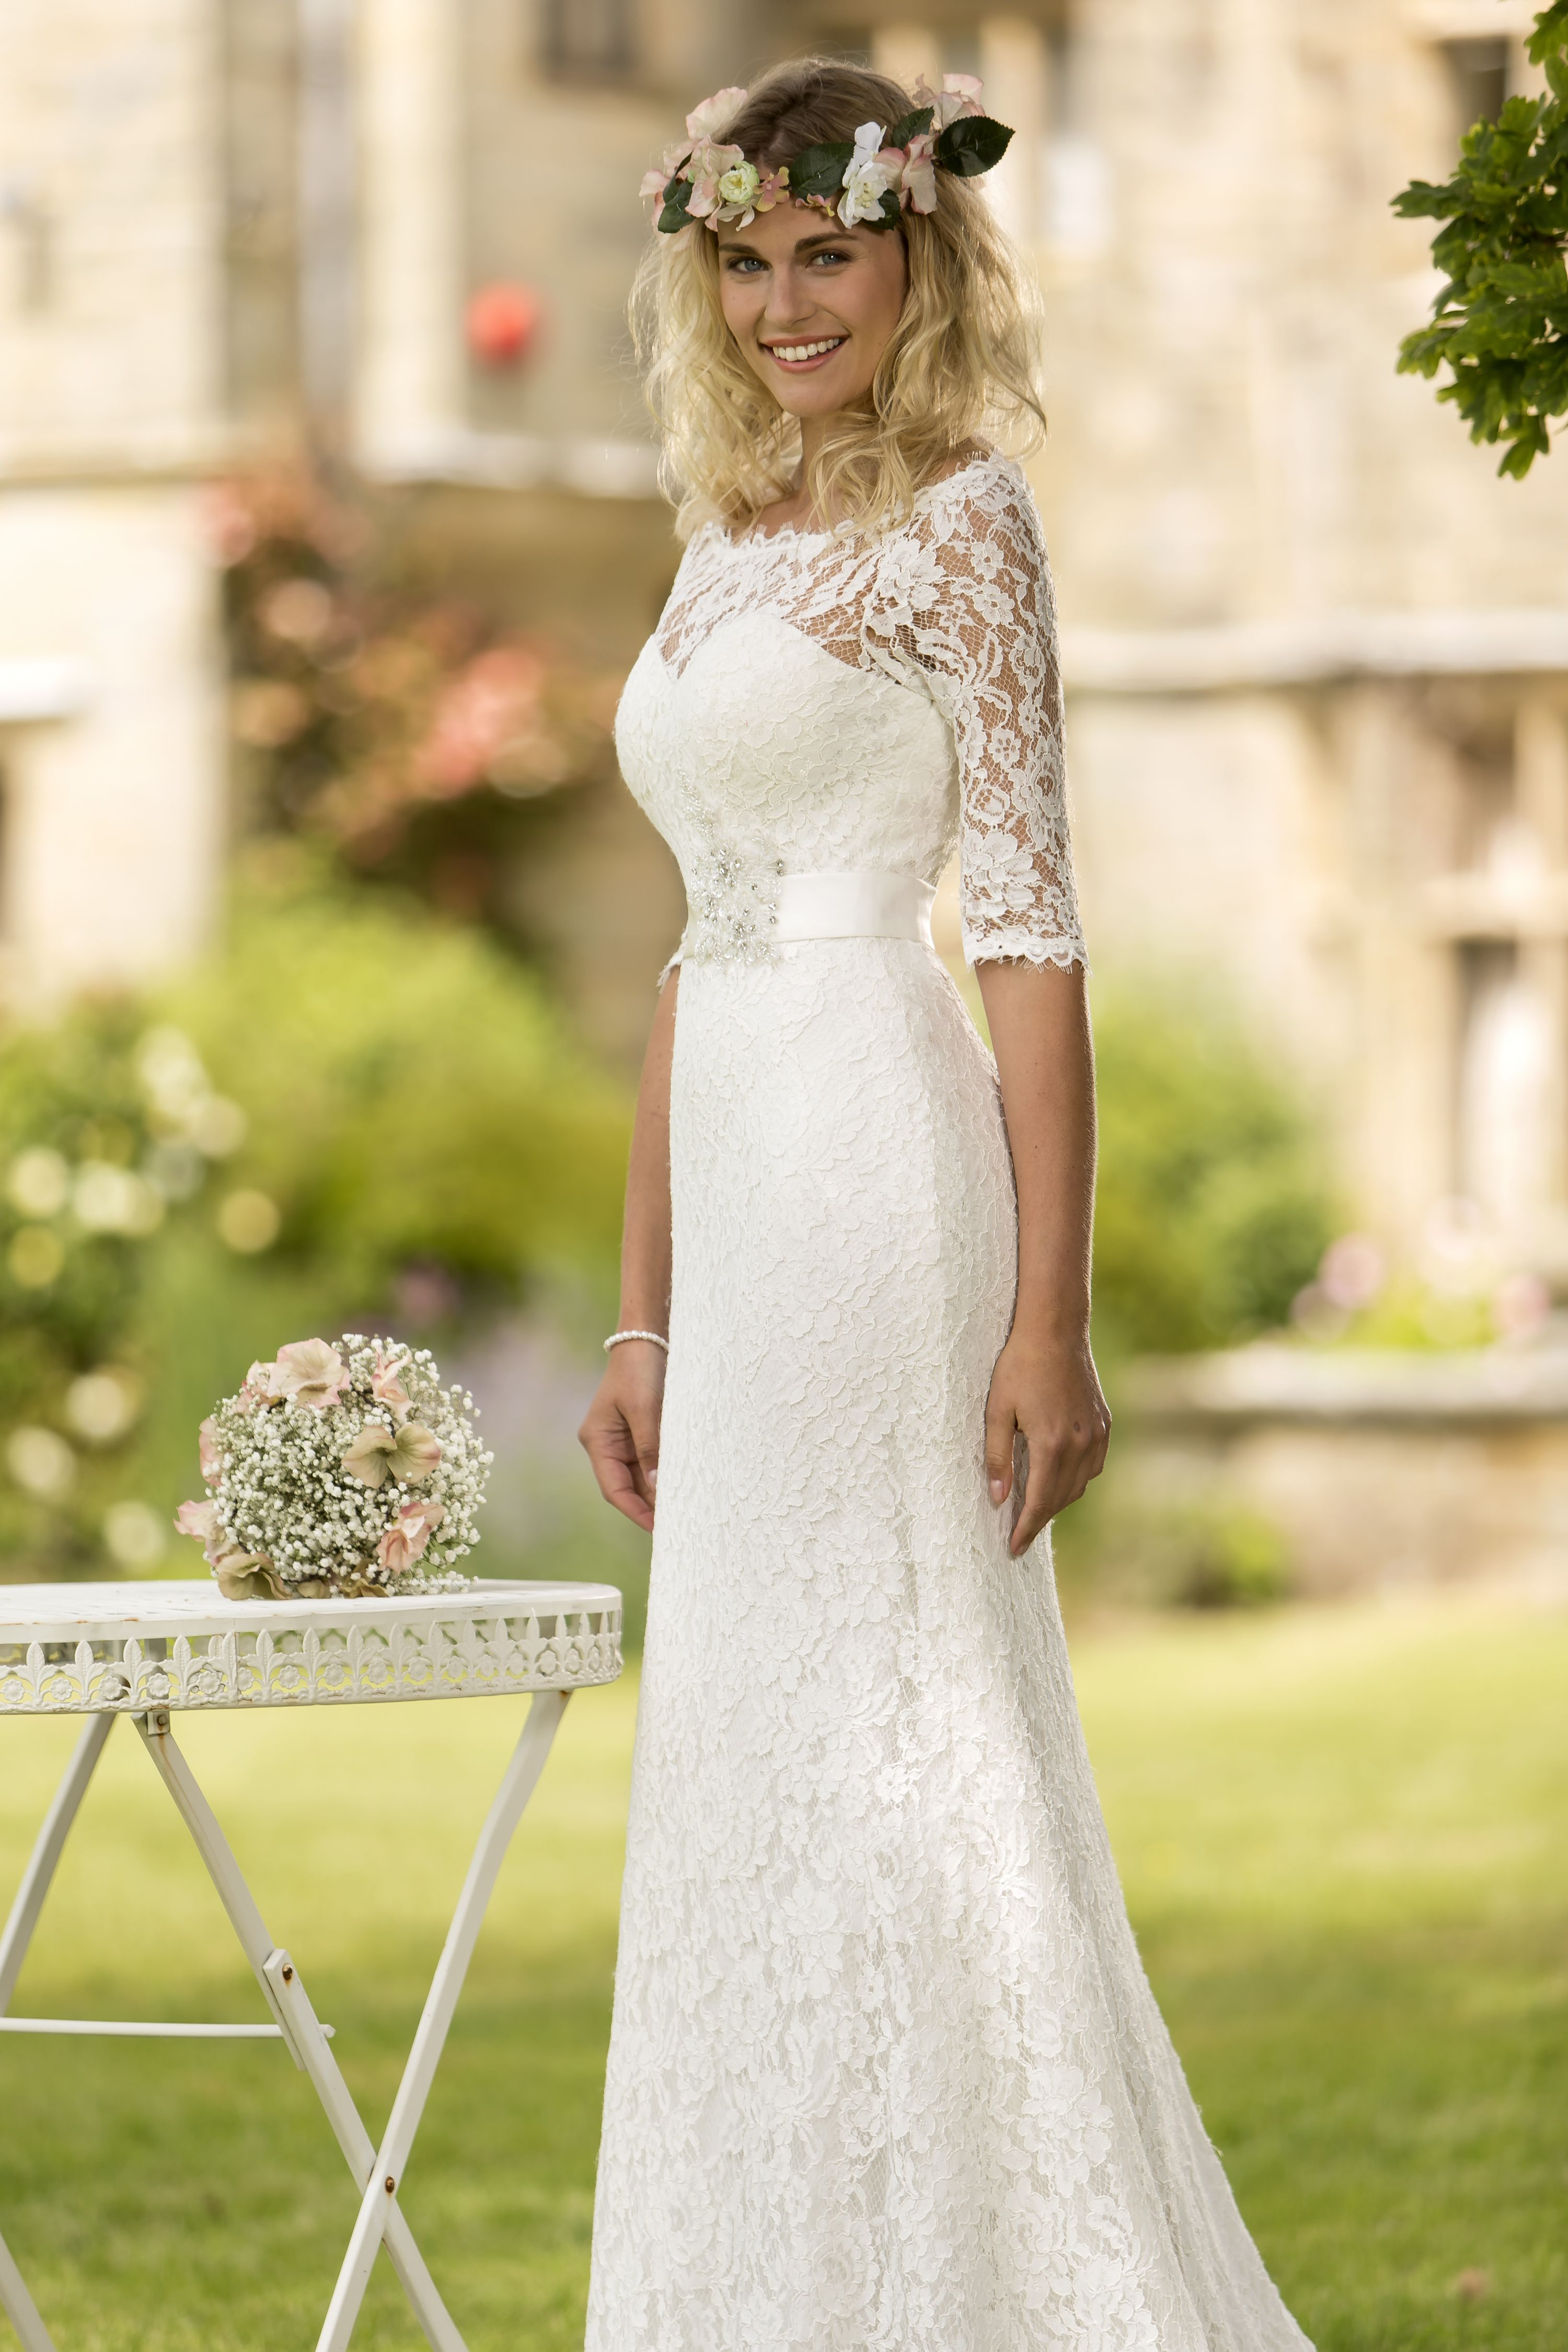 W186 -  Stunning corded lace bridal gown with bateau neckline and sleeve trimmed with a delicate lace scallop edge. Satin sash to waist embellished with a silver beaded applique. This gown is lined with the softess jersey which gives drape and movement to this elegant design. Zip up back with buttons and elasticated loops for a neat finish